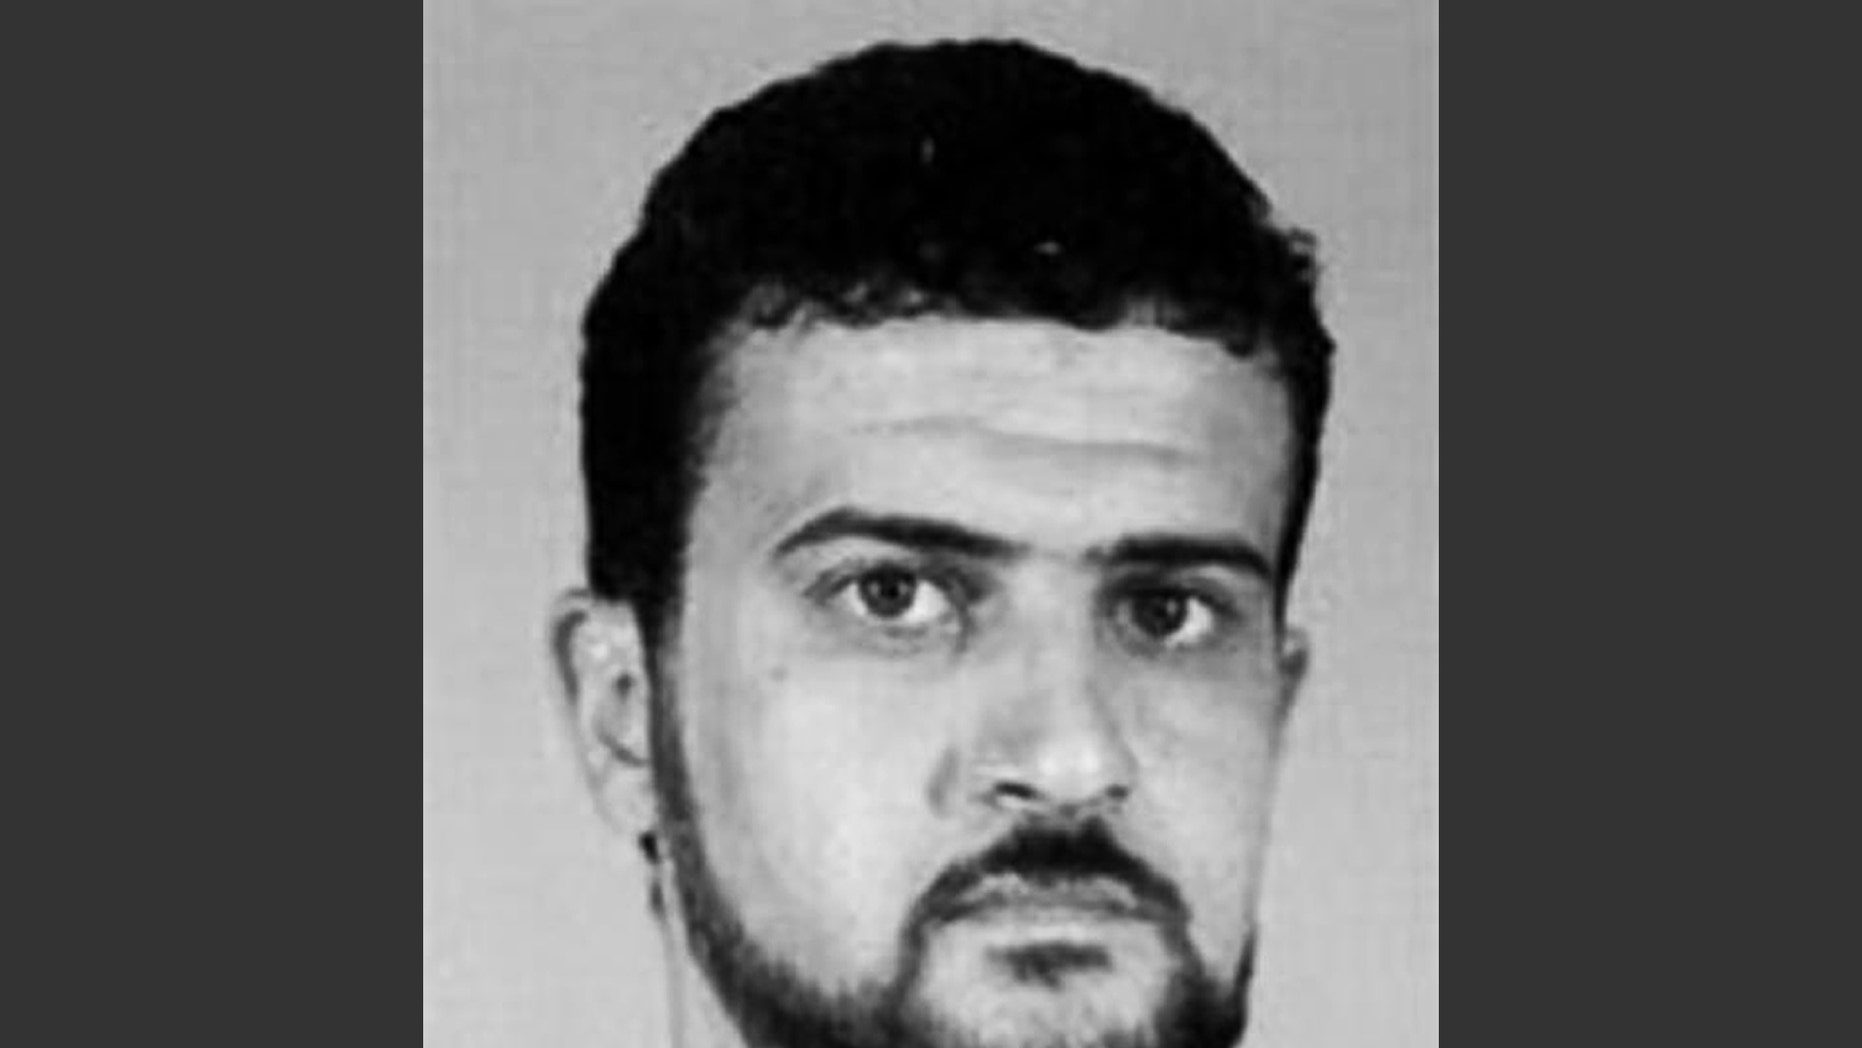 FILE - This file image from the FBI website shows Al Qaeda leader Abu Anas al-Libi. Al-Libi, who was captured in an Oct. 5, 2013, raid and held aboard a U.S. warship, is now in the United States. He is expected to stand trial over whether he helped plan and conduct surveillance for the bombings of U.S. embassies in Africa in 1998. (AP Photo/FBI, File)